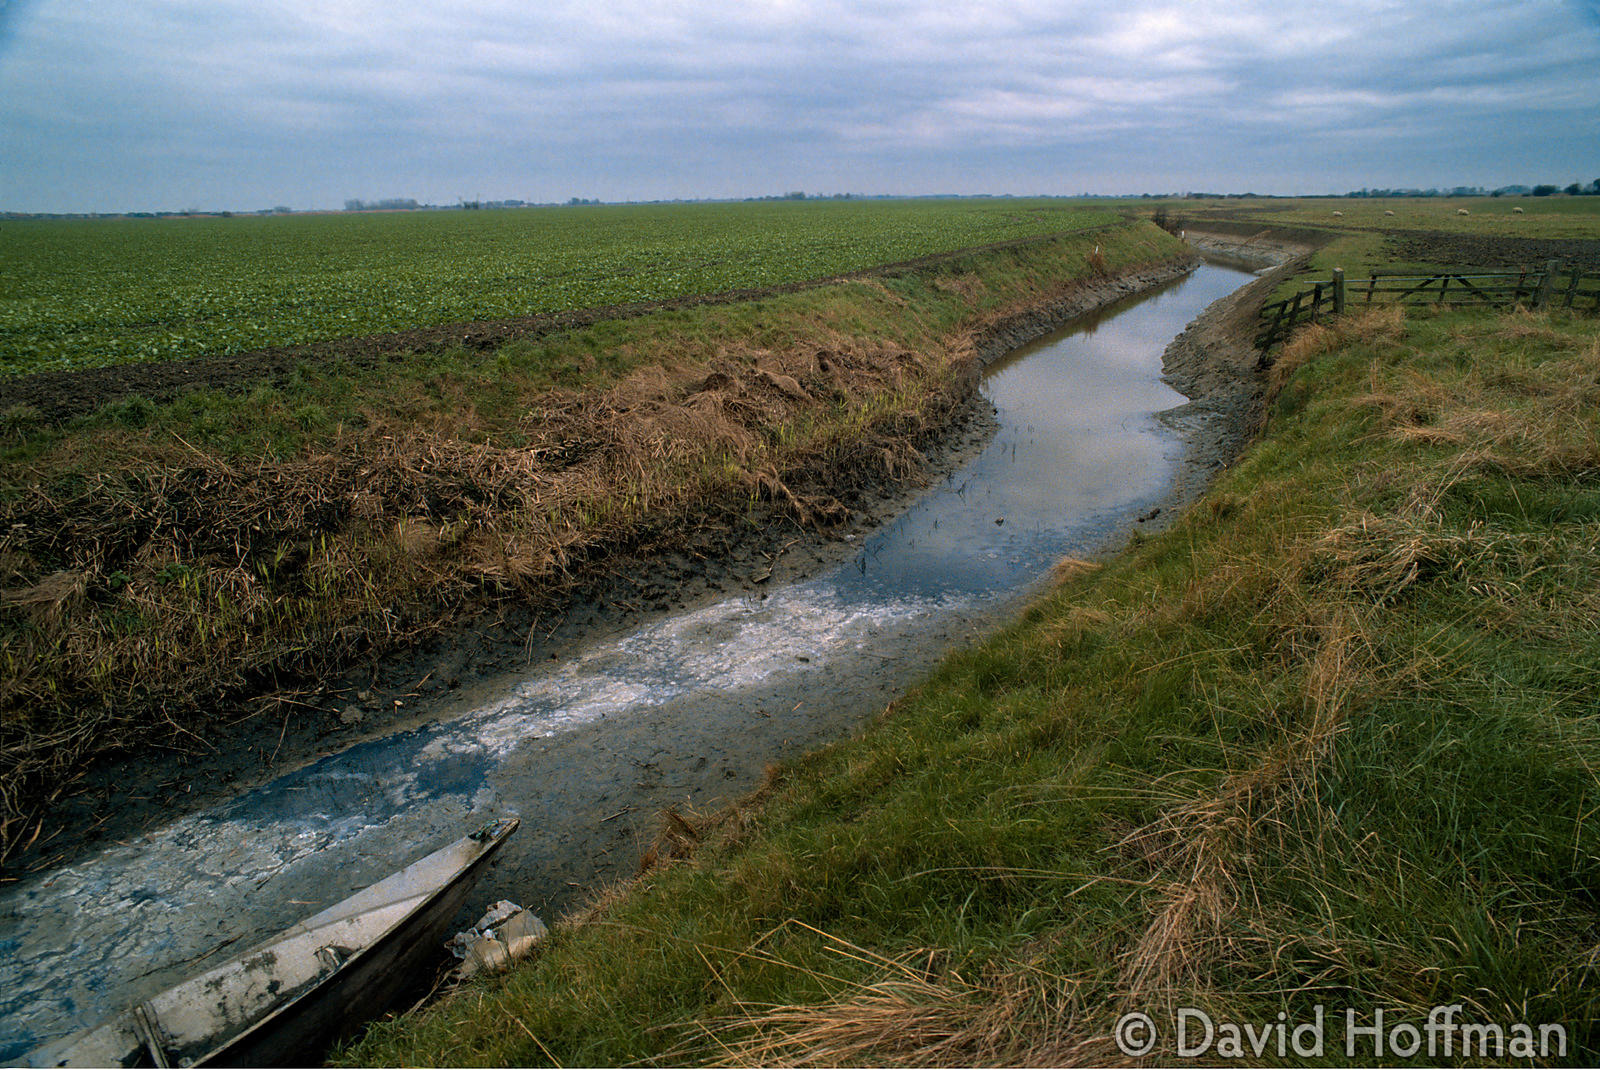 Romney marsh, Kent.Standing water in this drainage ditch is completely covered by algae. Romney marsh, Kent. Standing water i...